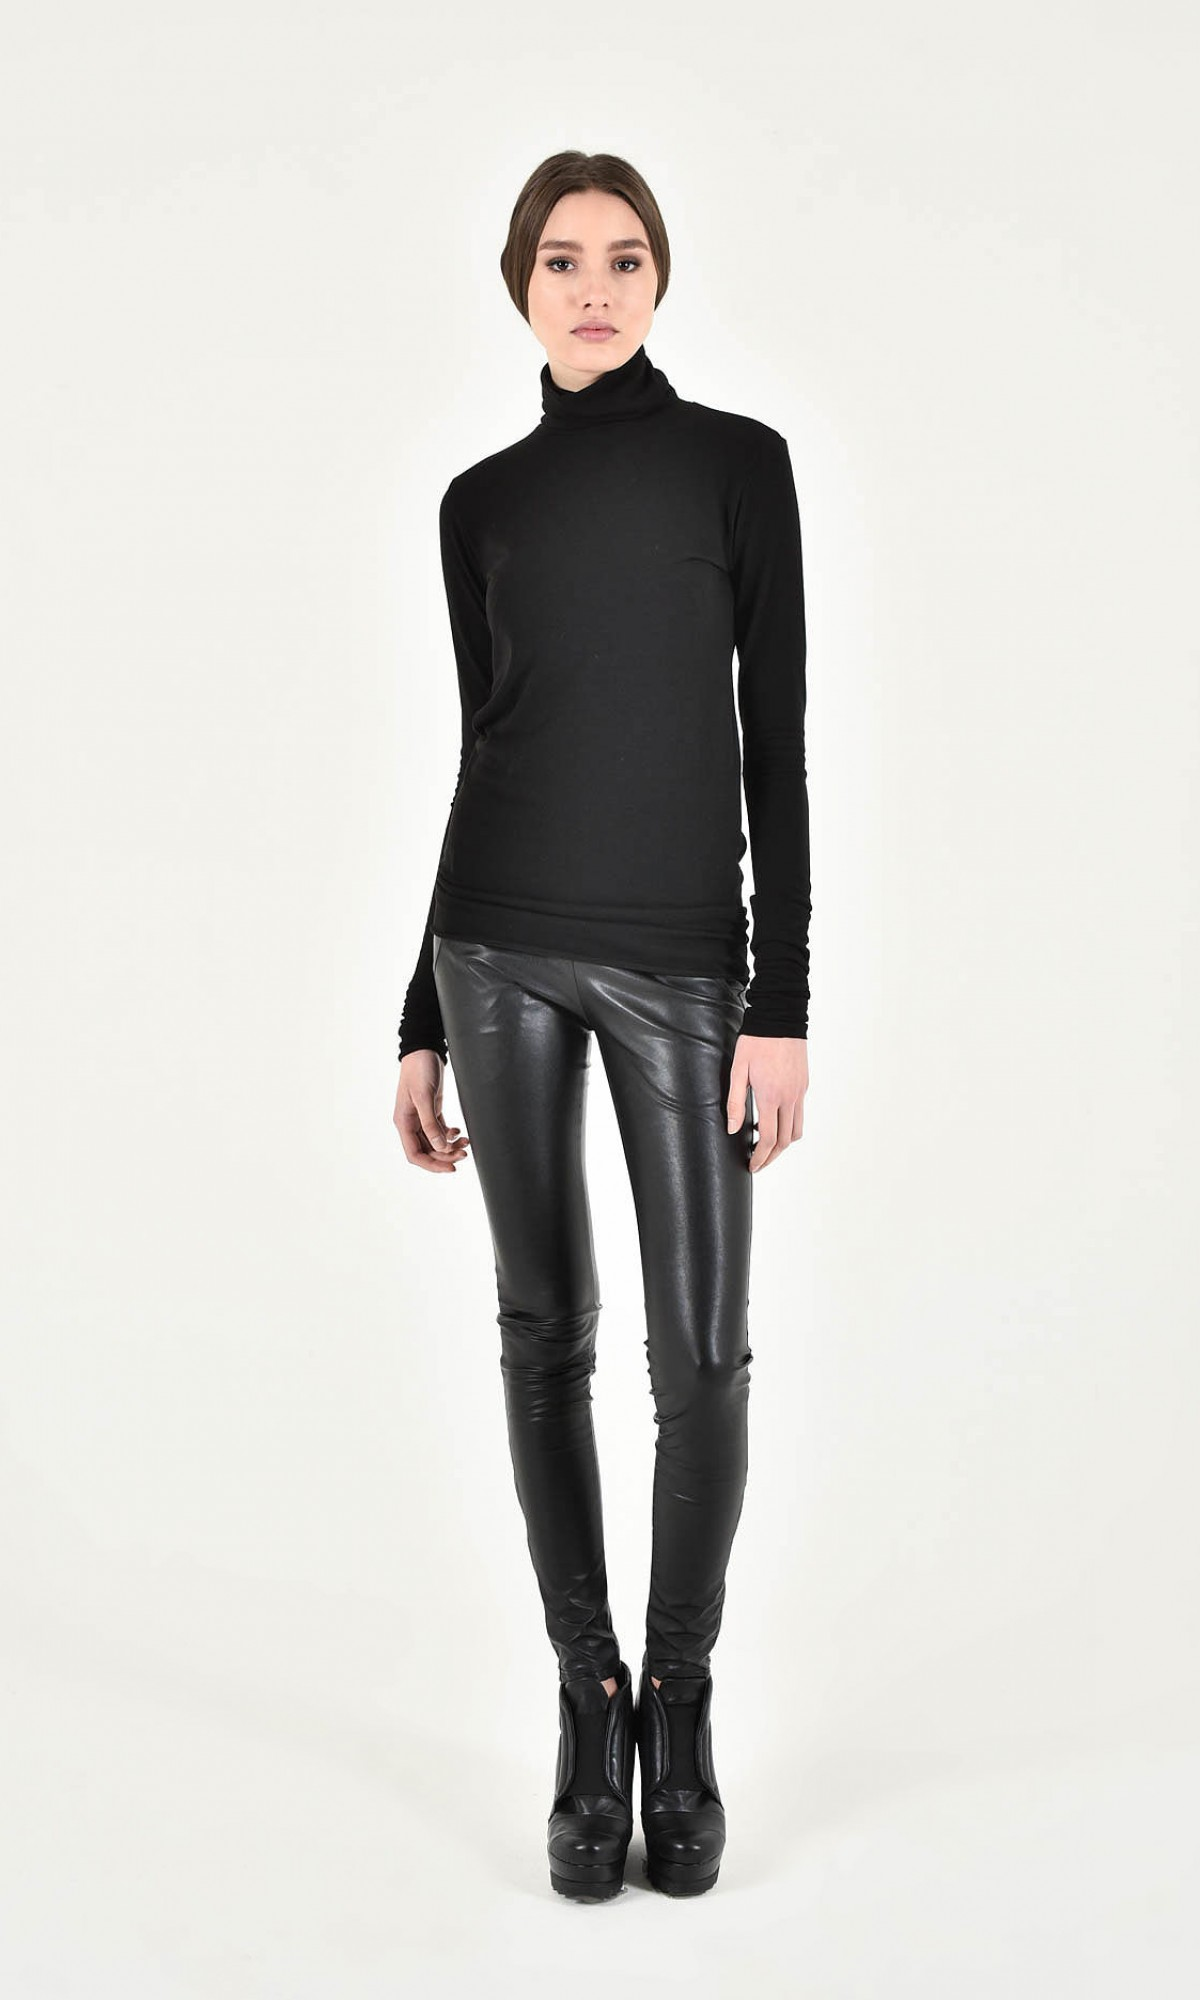 Faux Leather leggings with pockets and zippers